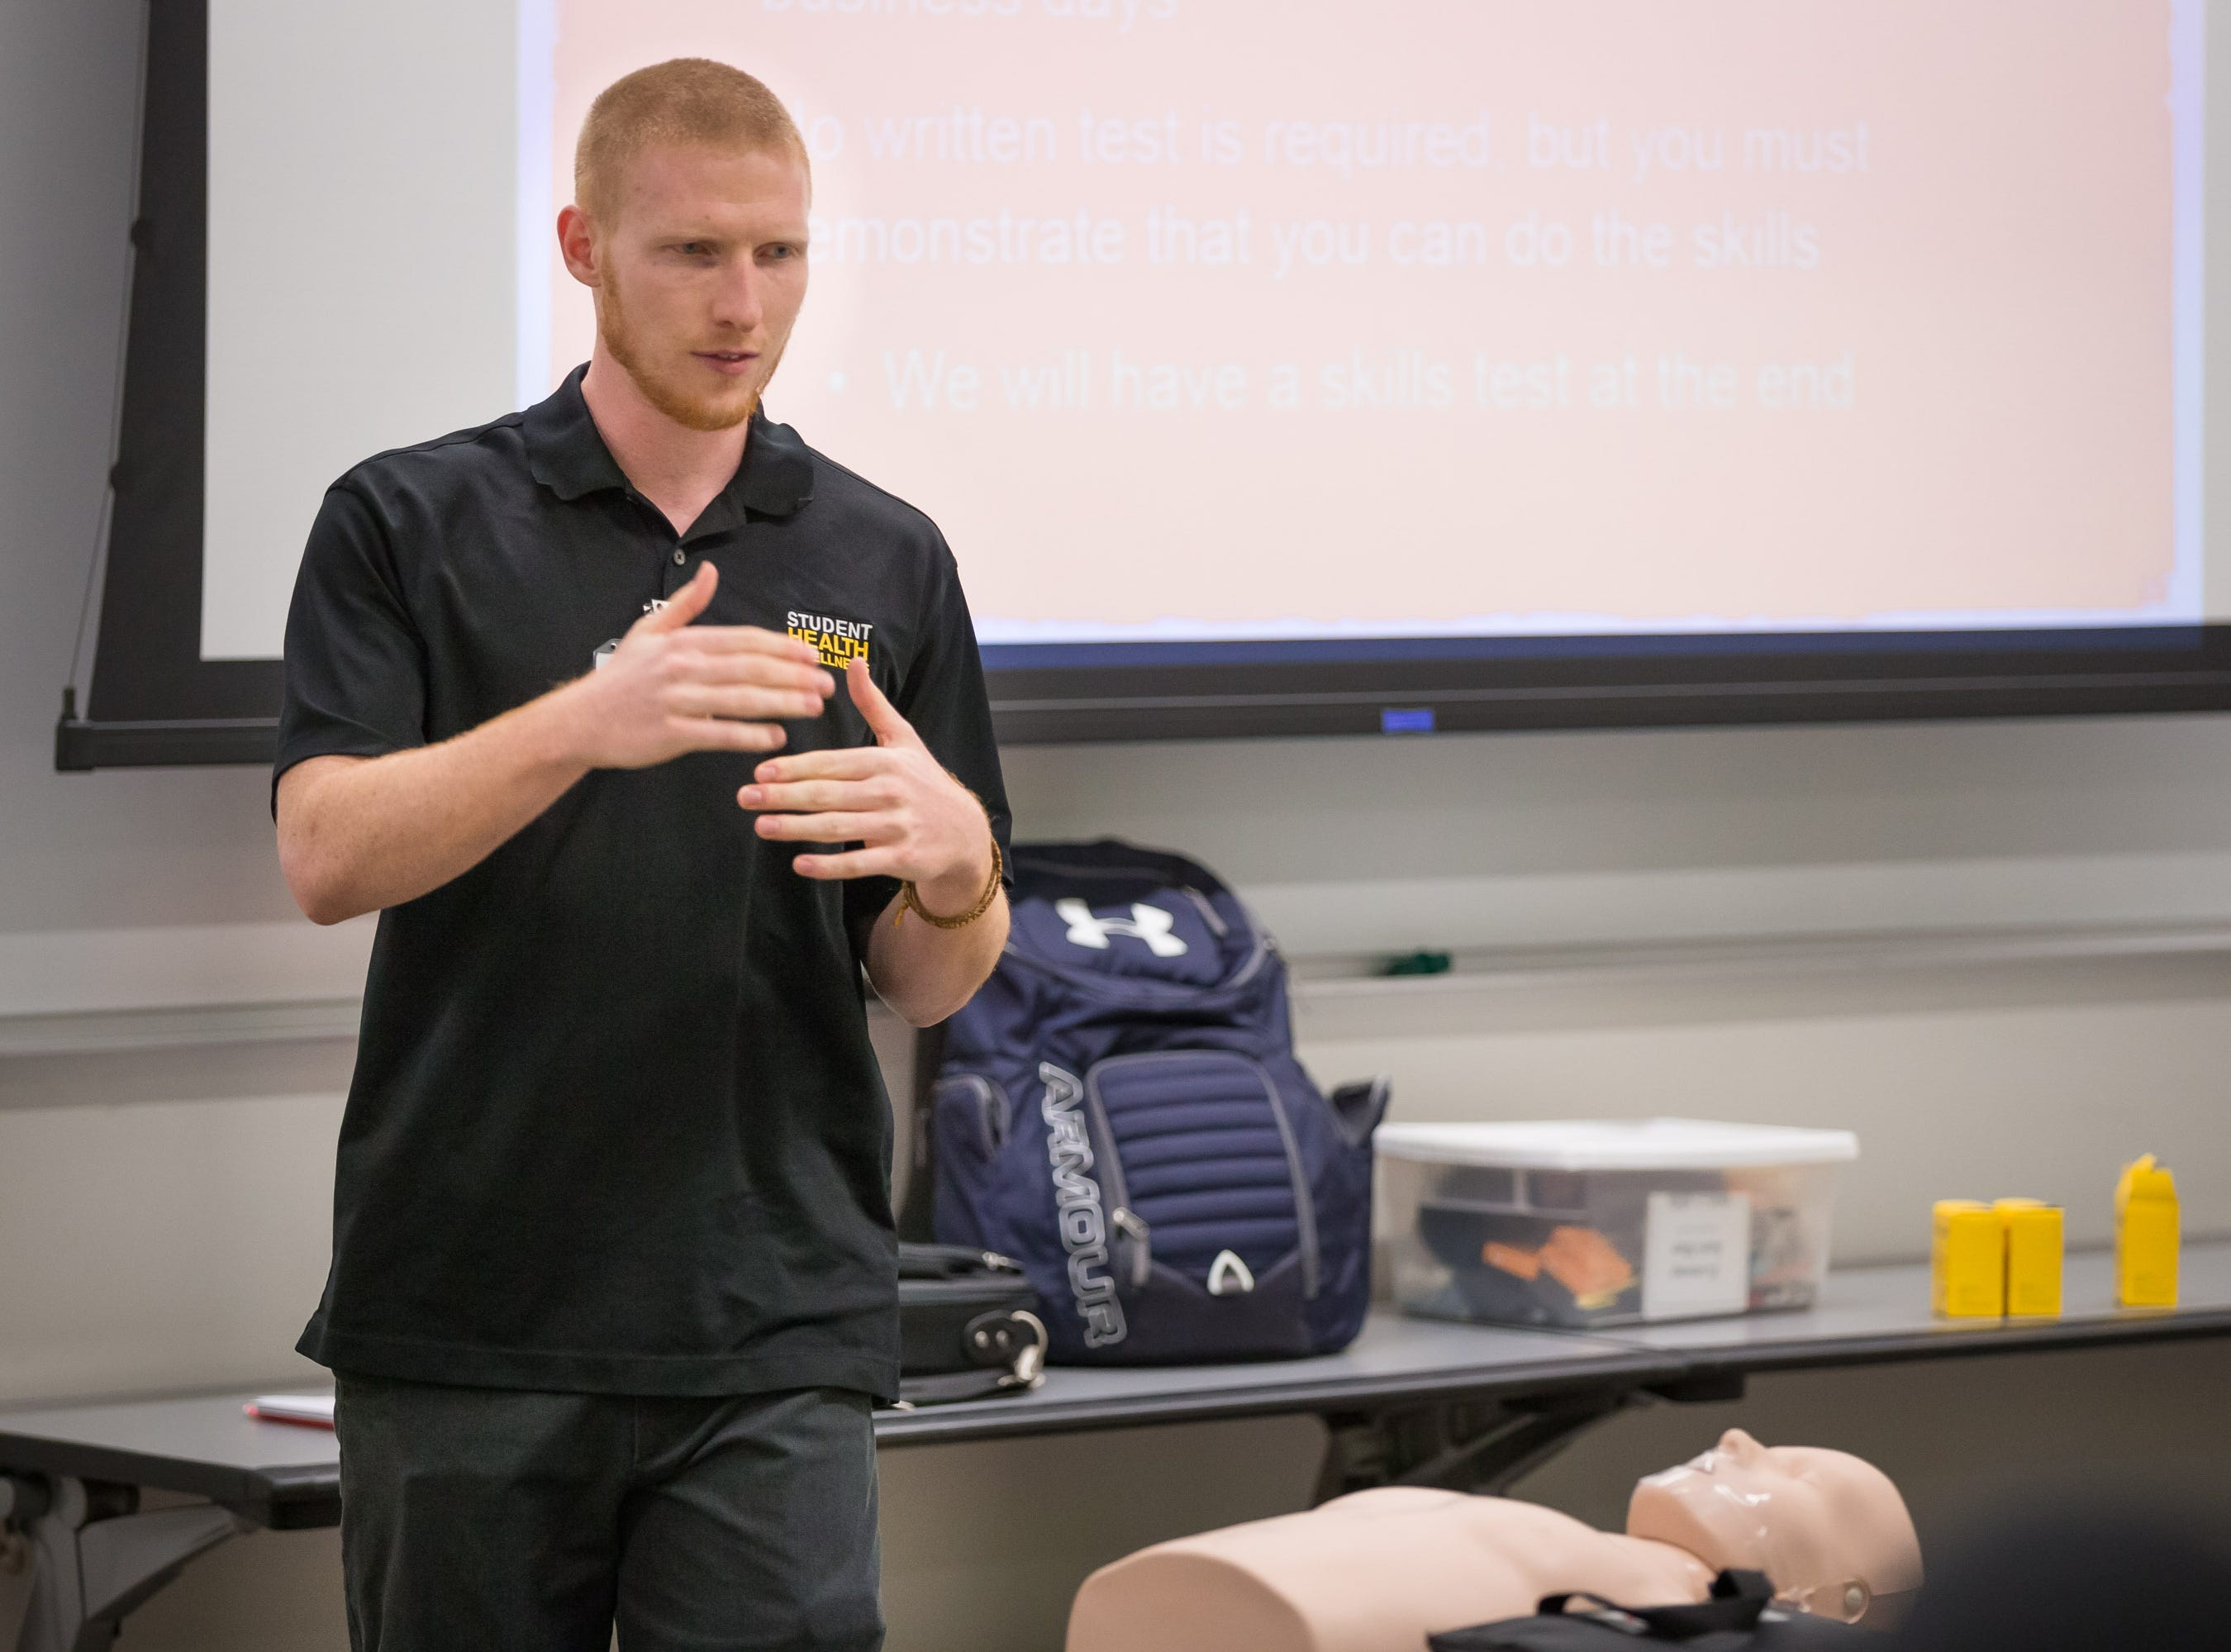 UI senior Dakota Fix addresses a classroom of UI students on CPR methods and best practices at the UI Campus Recreation & Wellness Center on Monday, October 29, 2018.